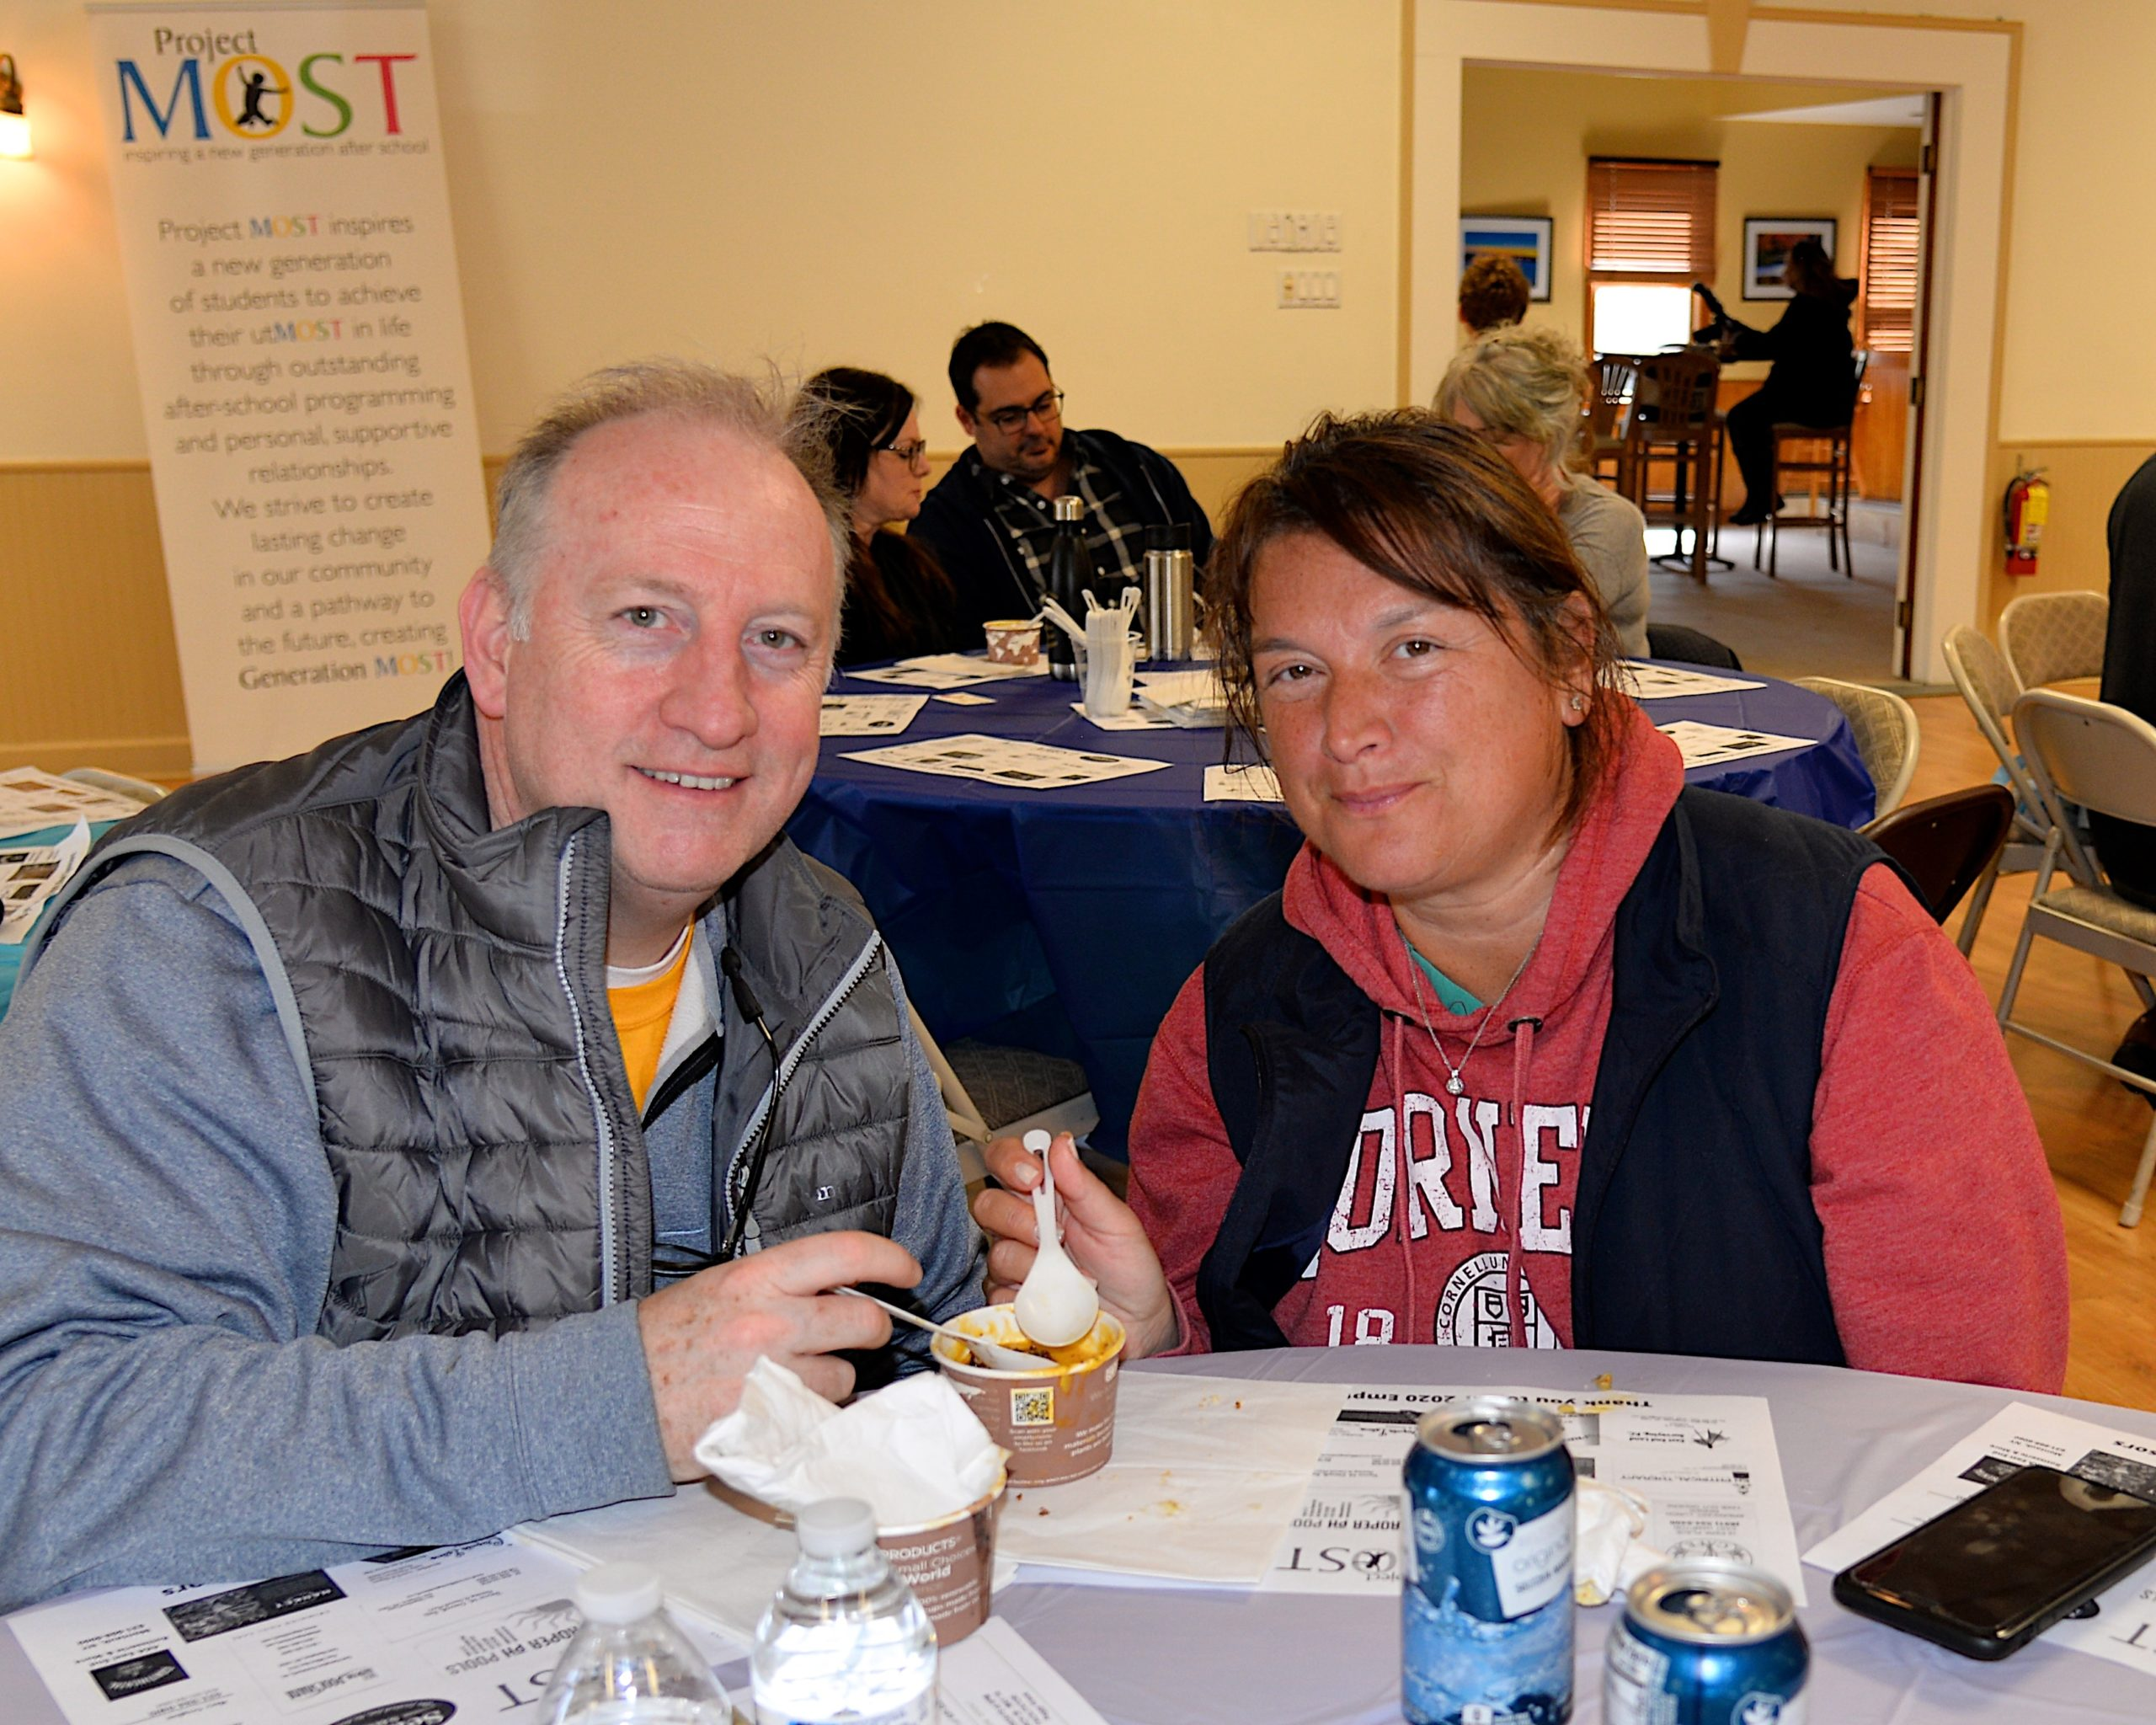 Empty Bowls, a fundraiser for Project Most, with soups from local chefs and restaurants took place at the Amagansett American Legion hall on Sunday.  Brian and Mariela Raeburn turned out for the cause. KYRIL BROMLEY